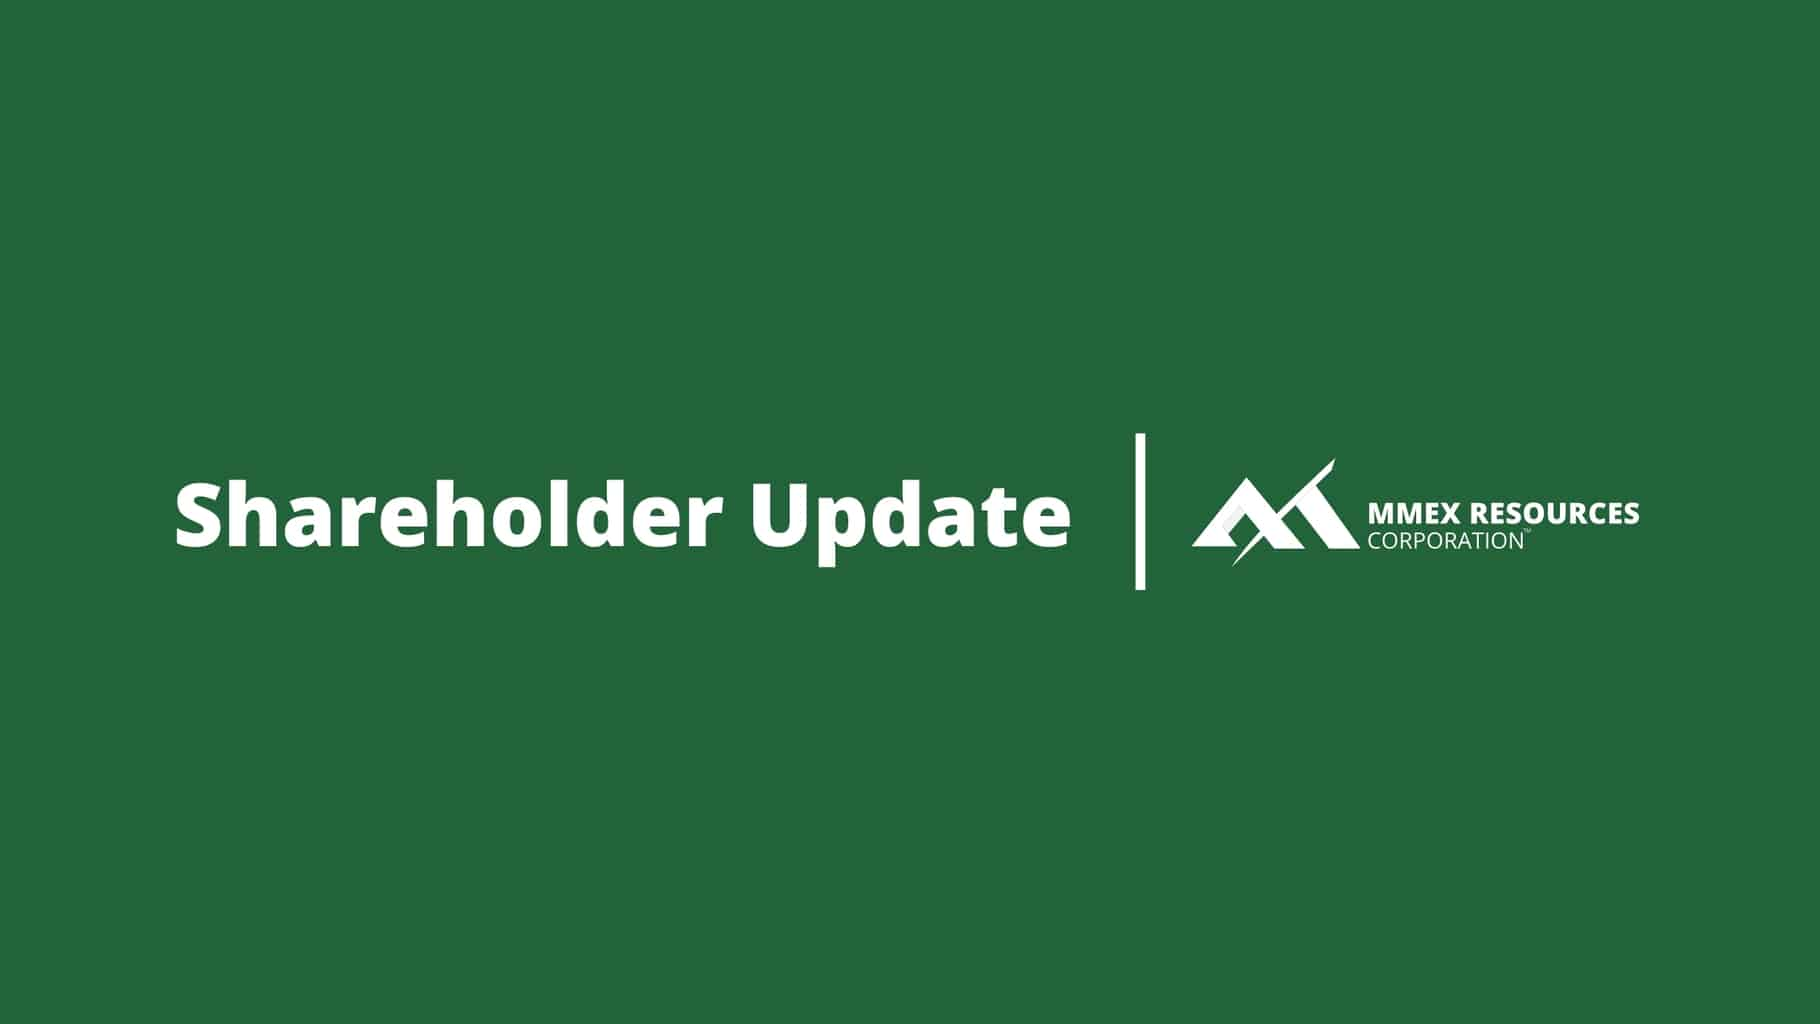 MMEX Blog Category Featured Image - Shareholder Update